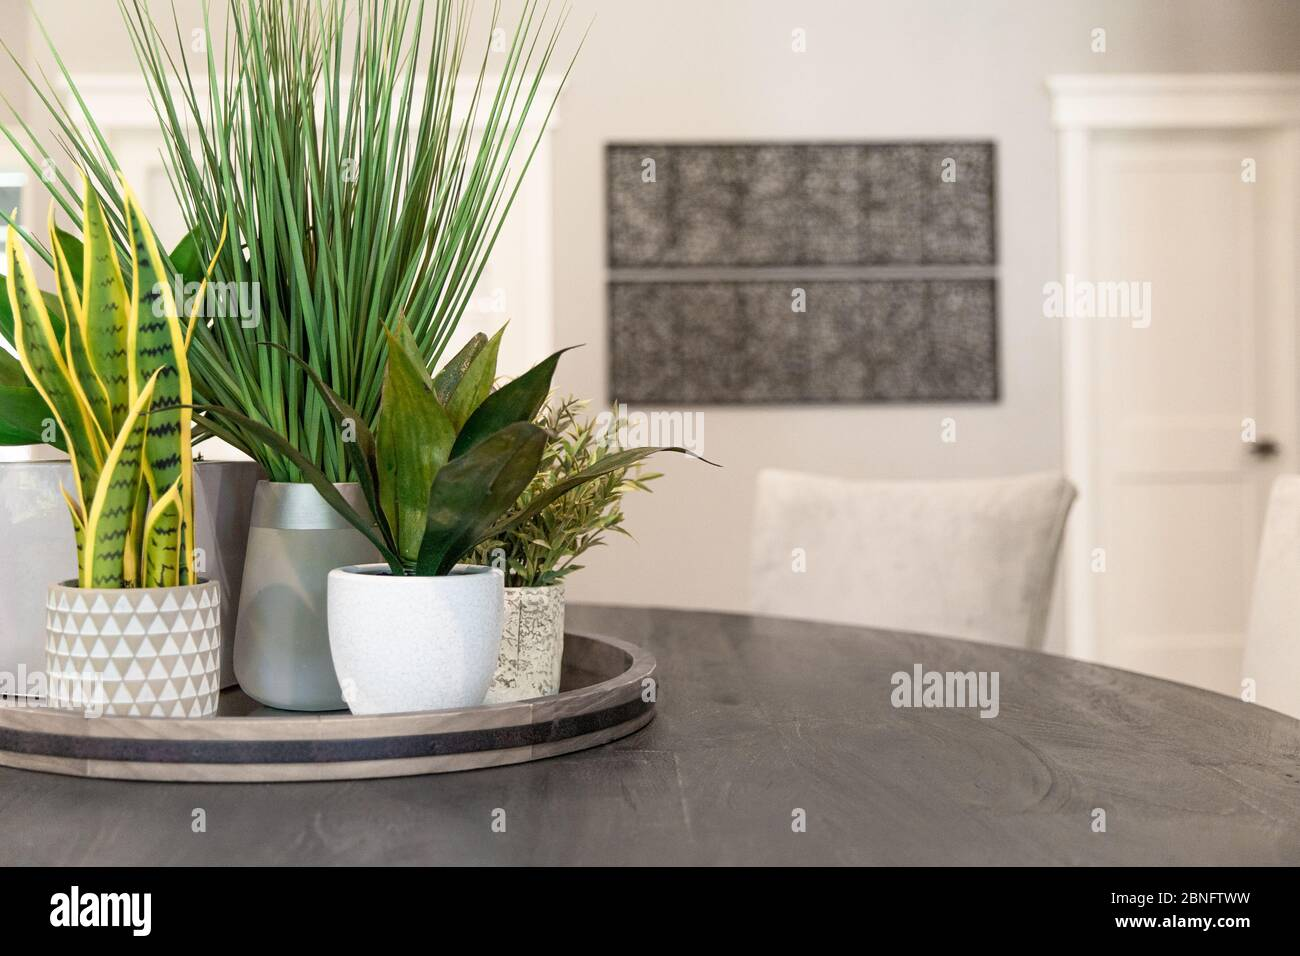 Modern Home Decor Items Including Plants And Vases Atop A Dining Table Appear Inside This Sleek Modern Home Stock Photo Alamy